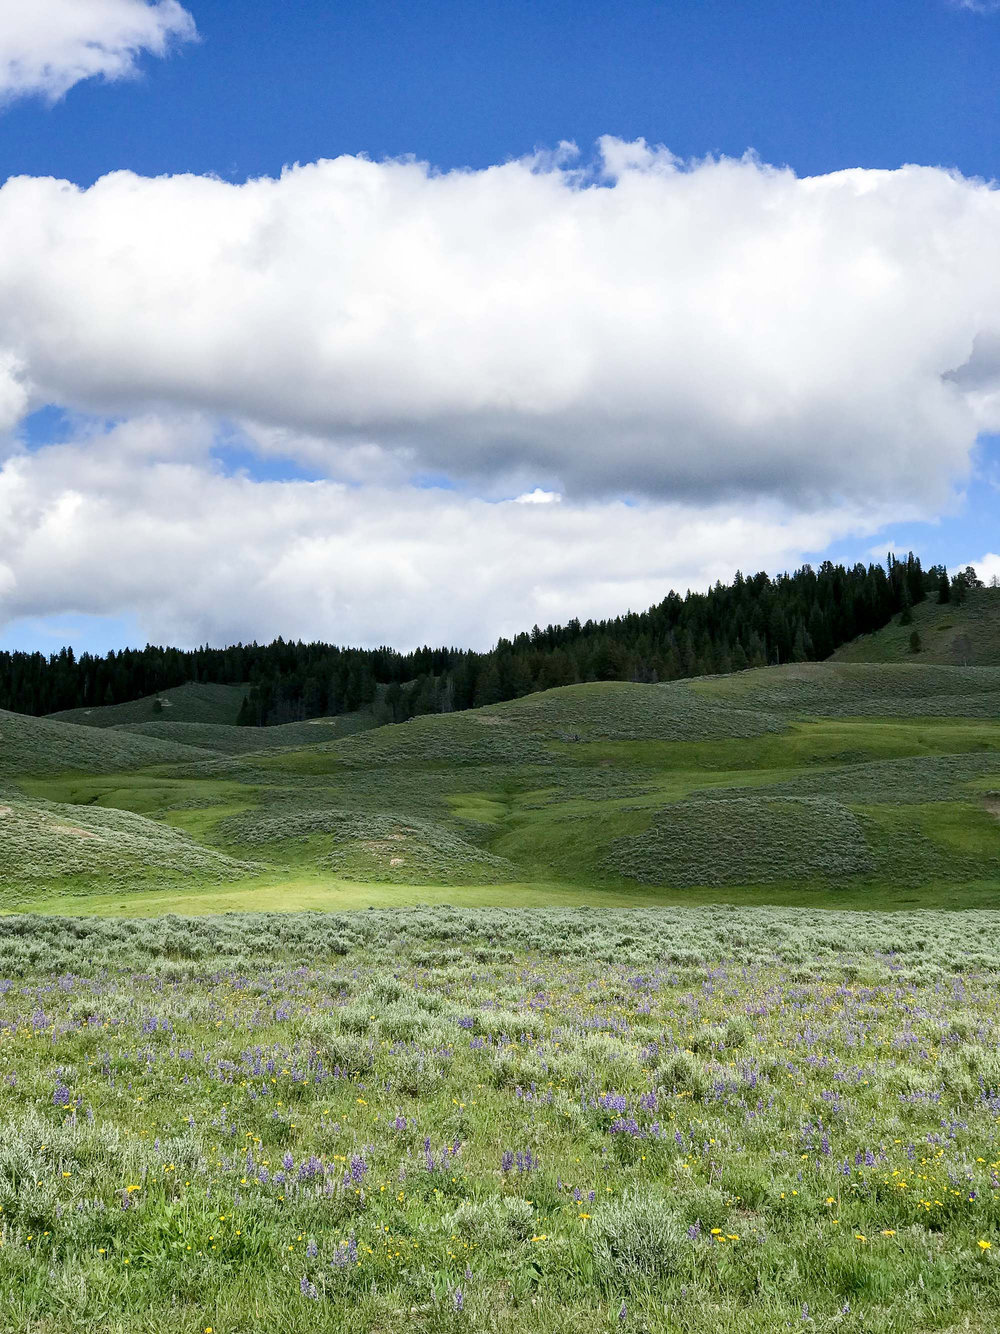 hayden-valley-yellowstone.jpg